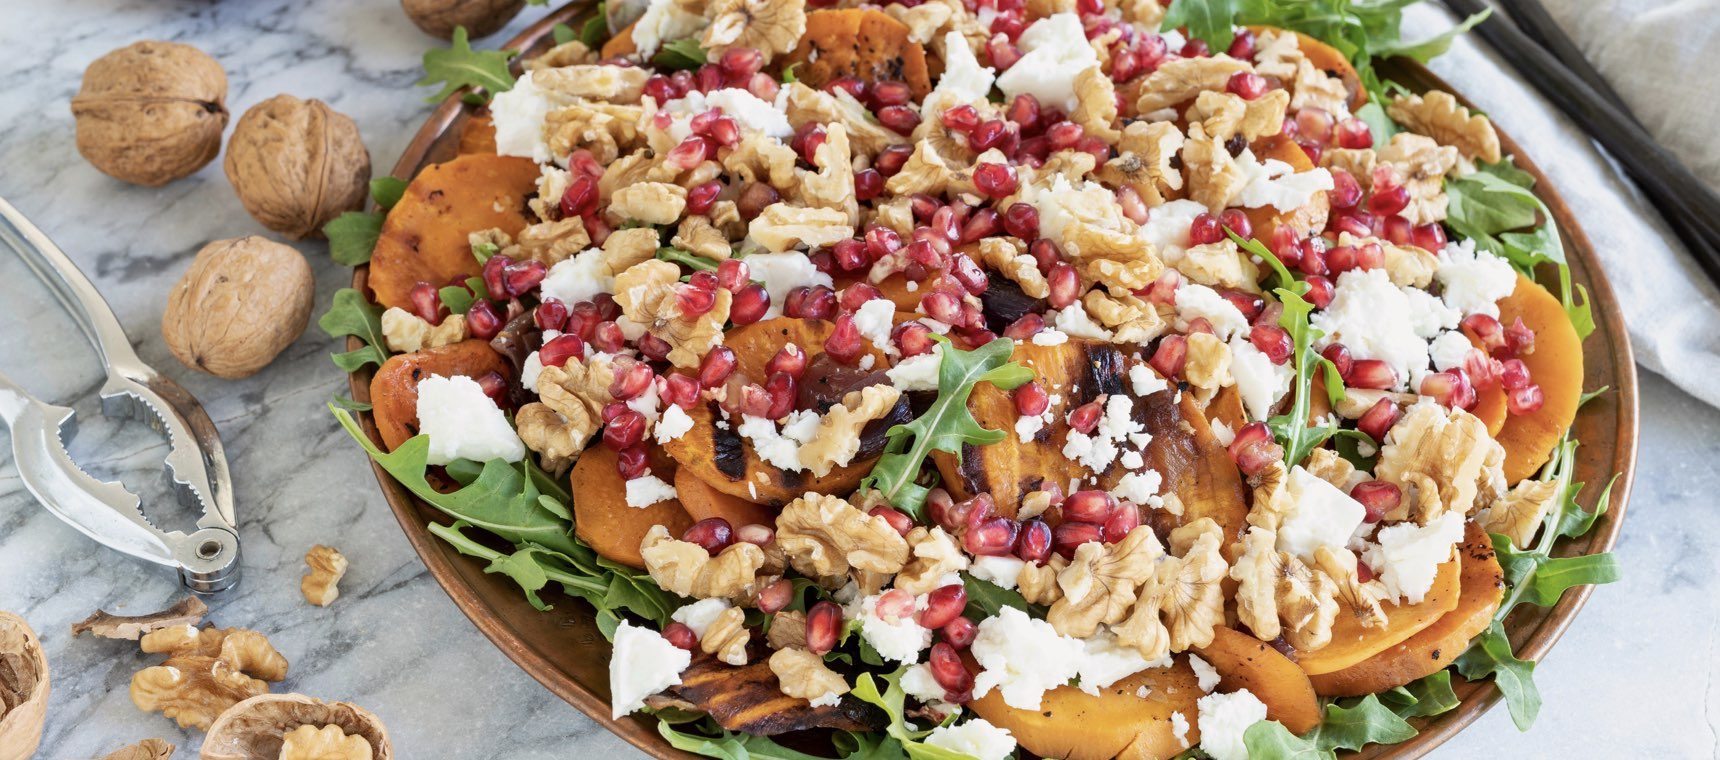 Grilled Sweet Potato and Walnut Salad